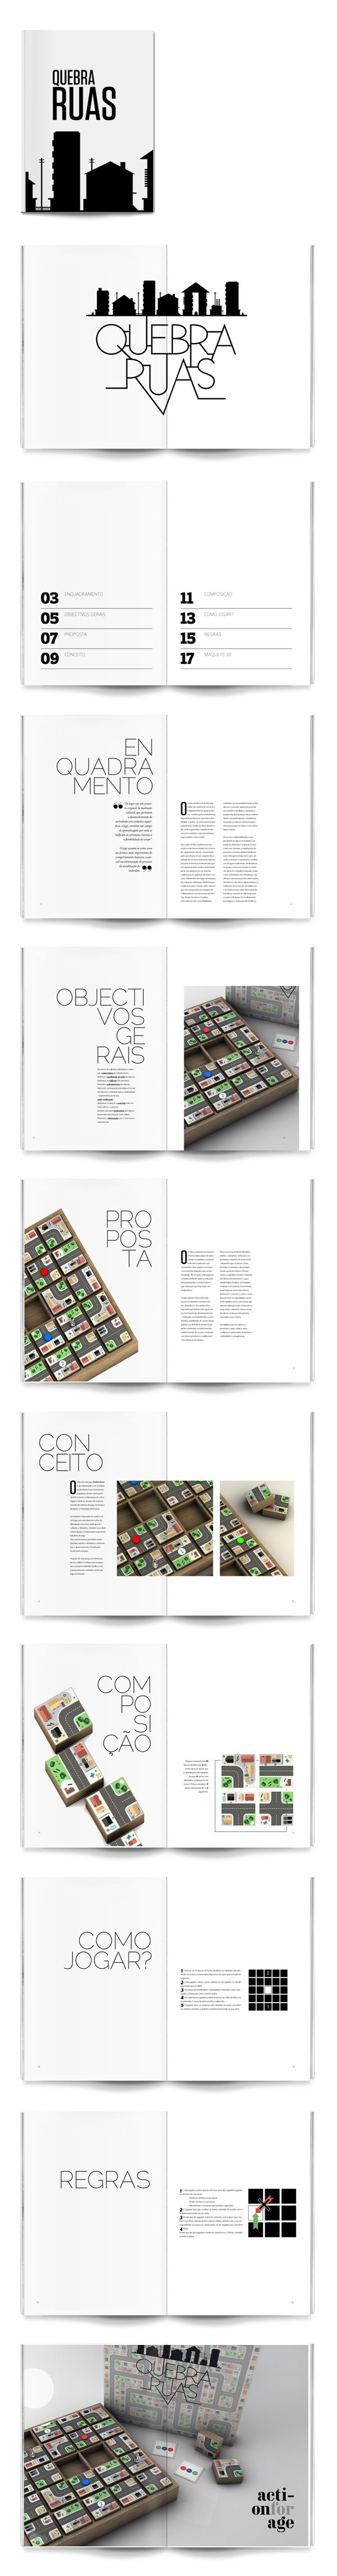 Quebra Ruas - #GraphicDesign